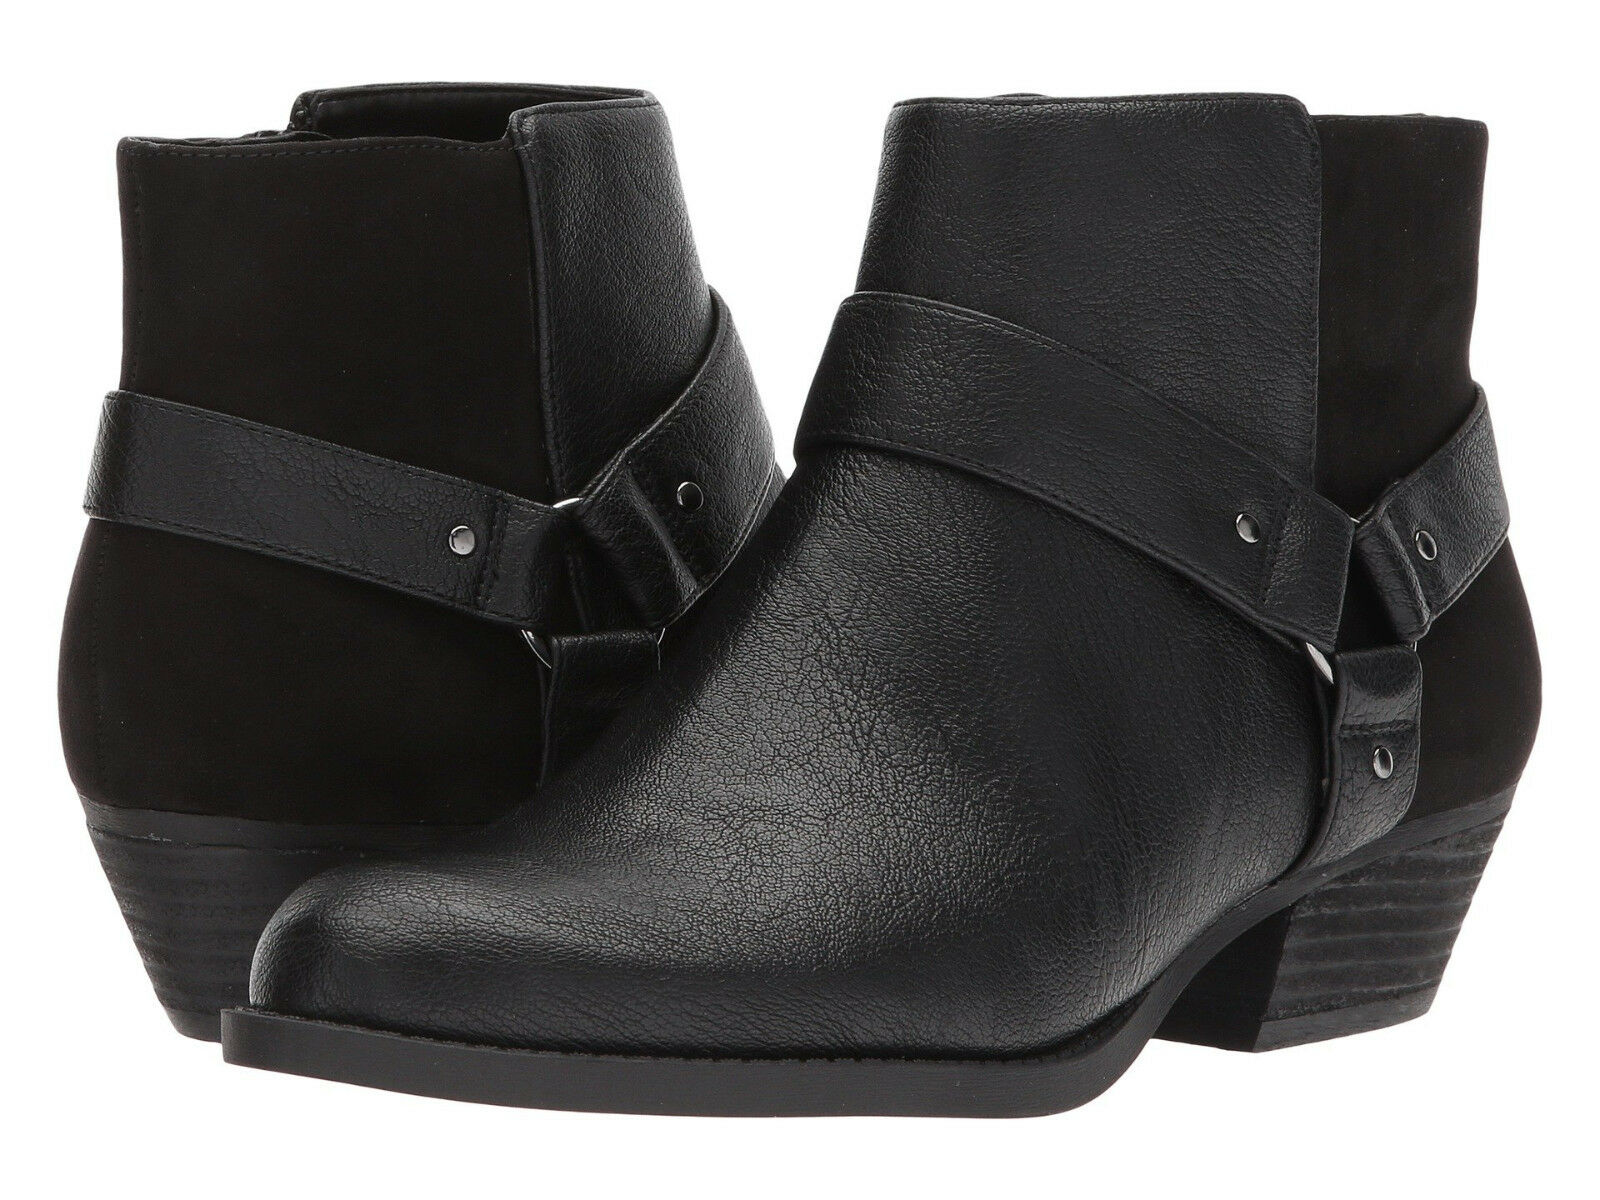 New w Box Women's Nine West Kinda Black Synthetic Synthetic Synthetic Ankle Boot 10.5 M 0f9de4